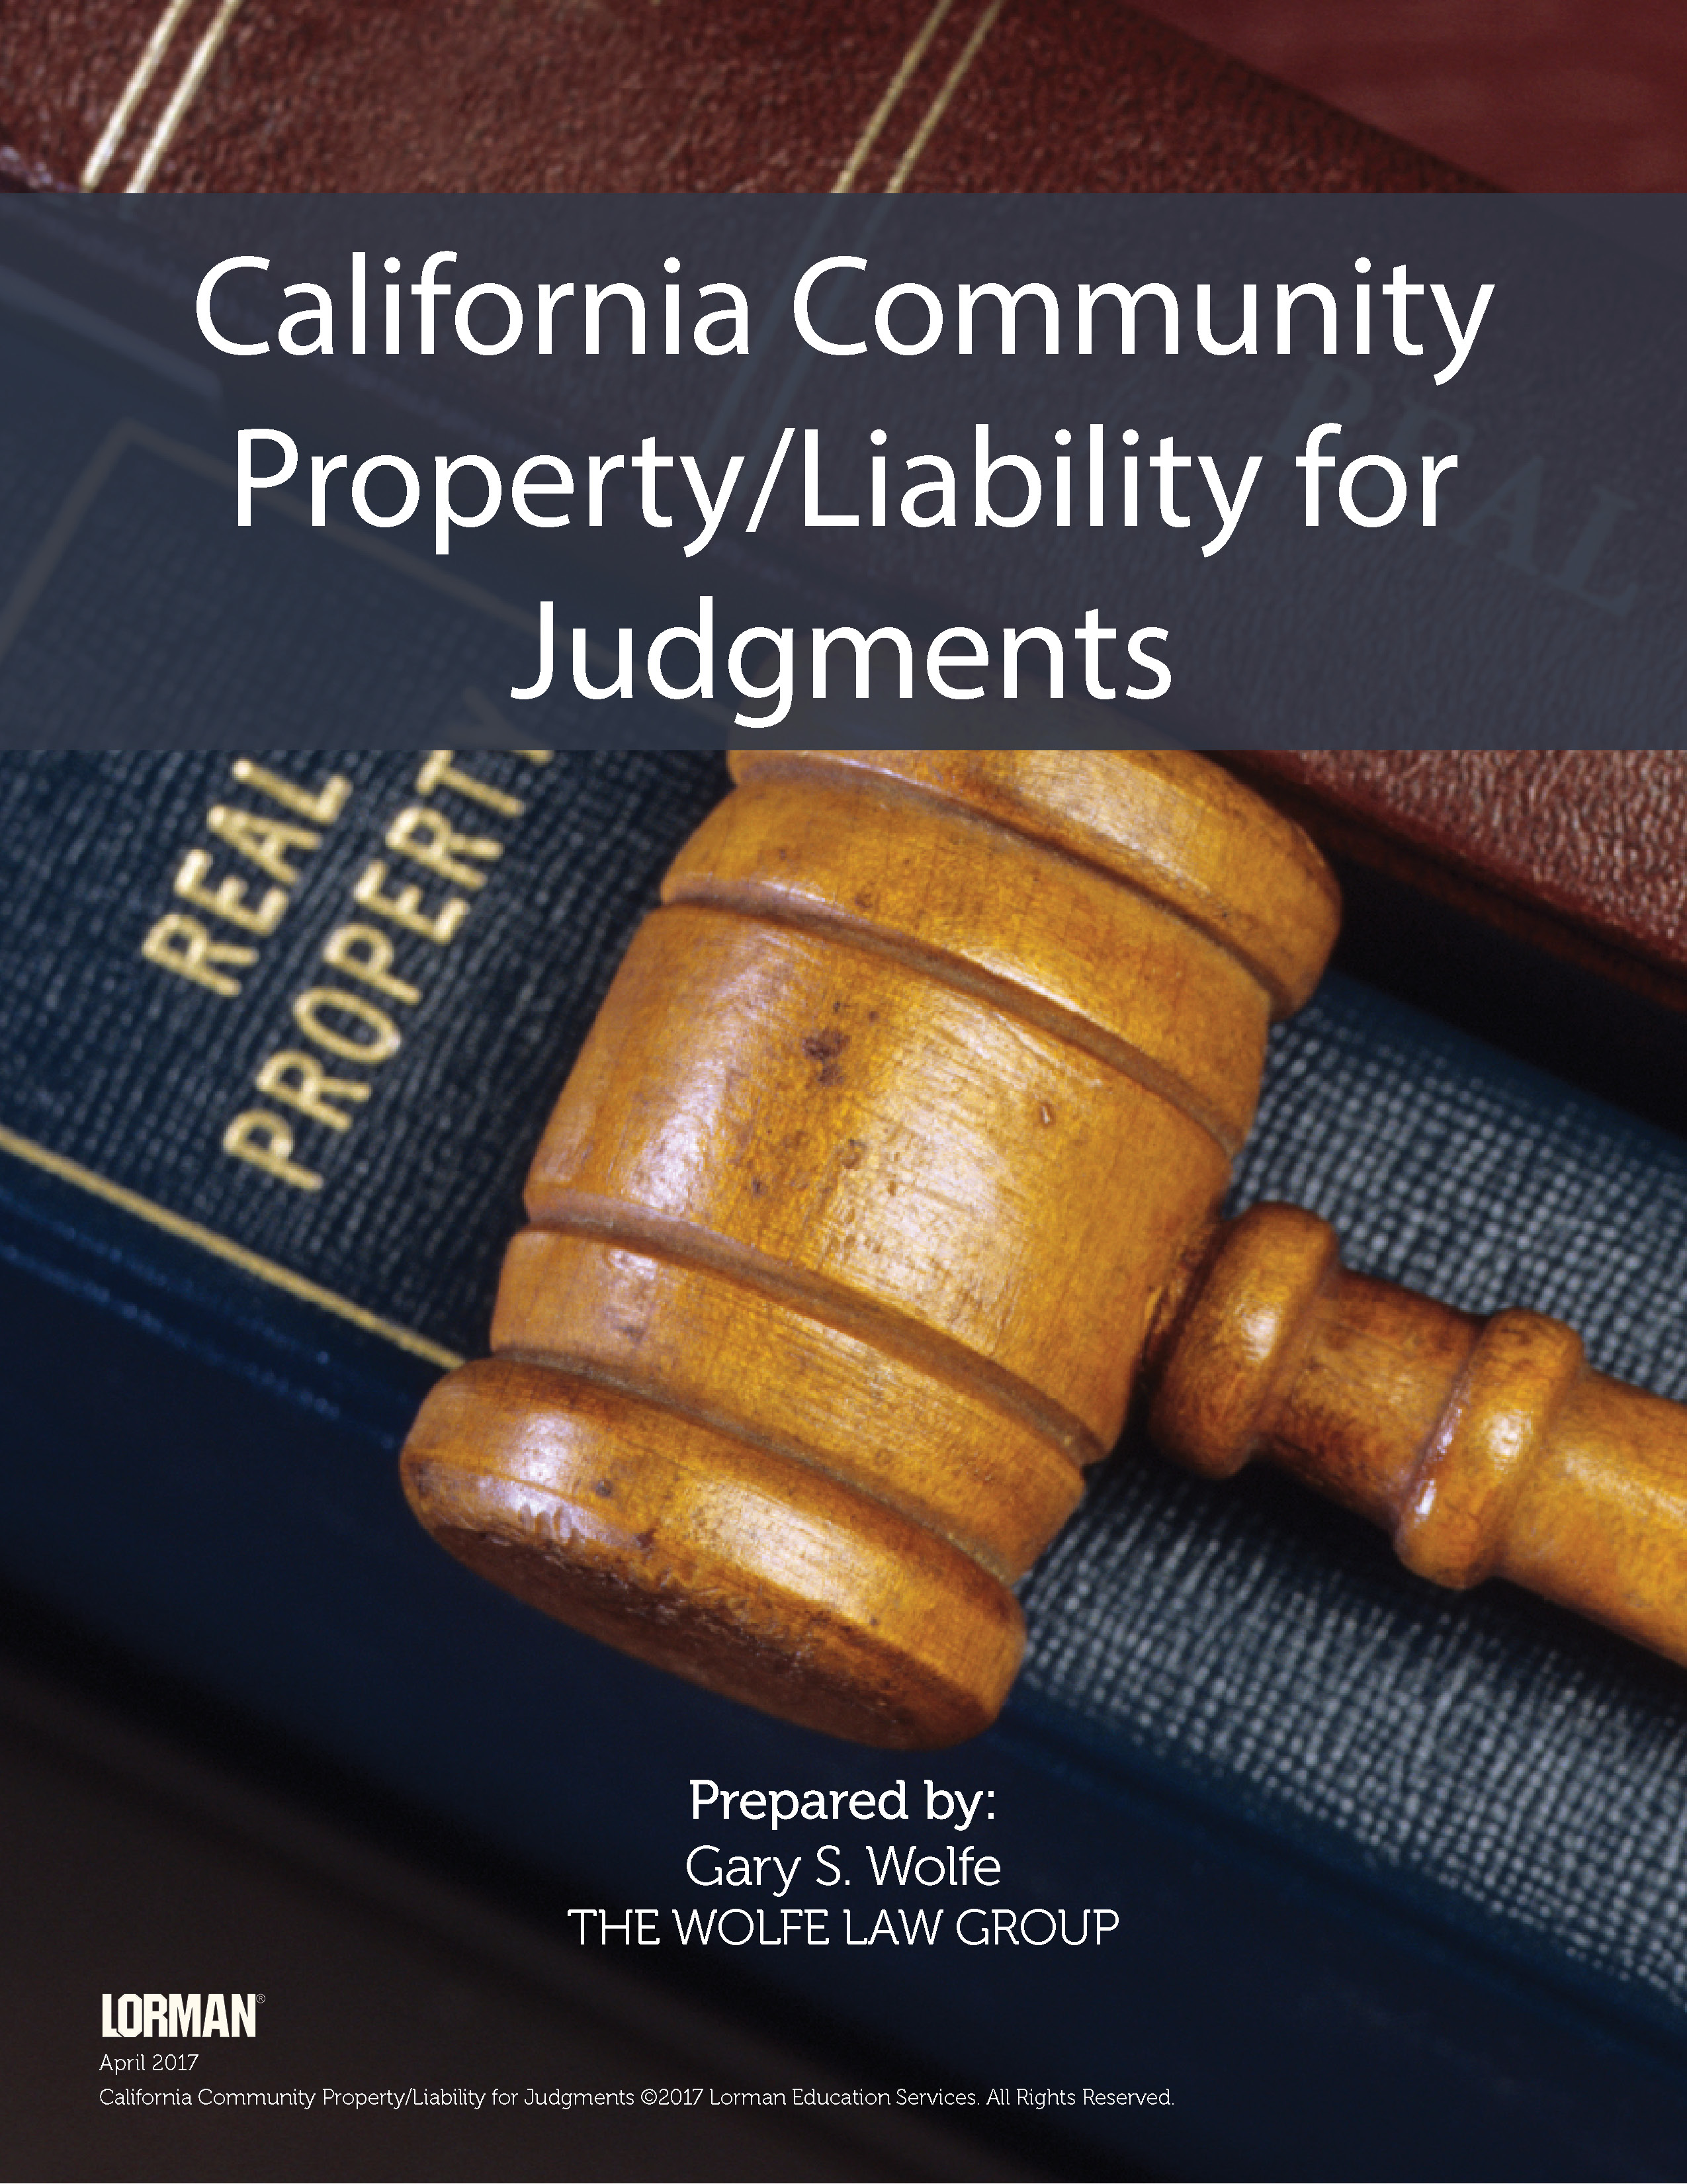 California Community Property - Liability for Judgments